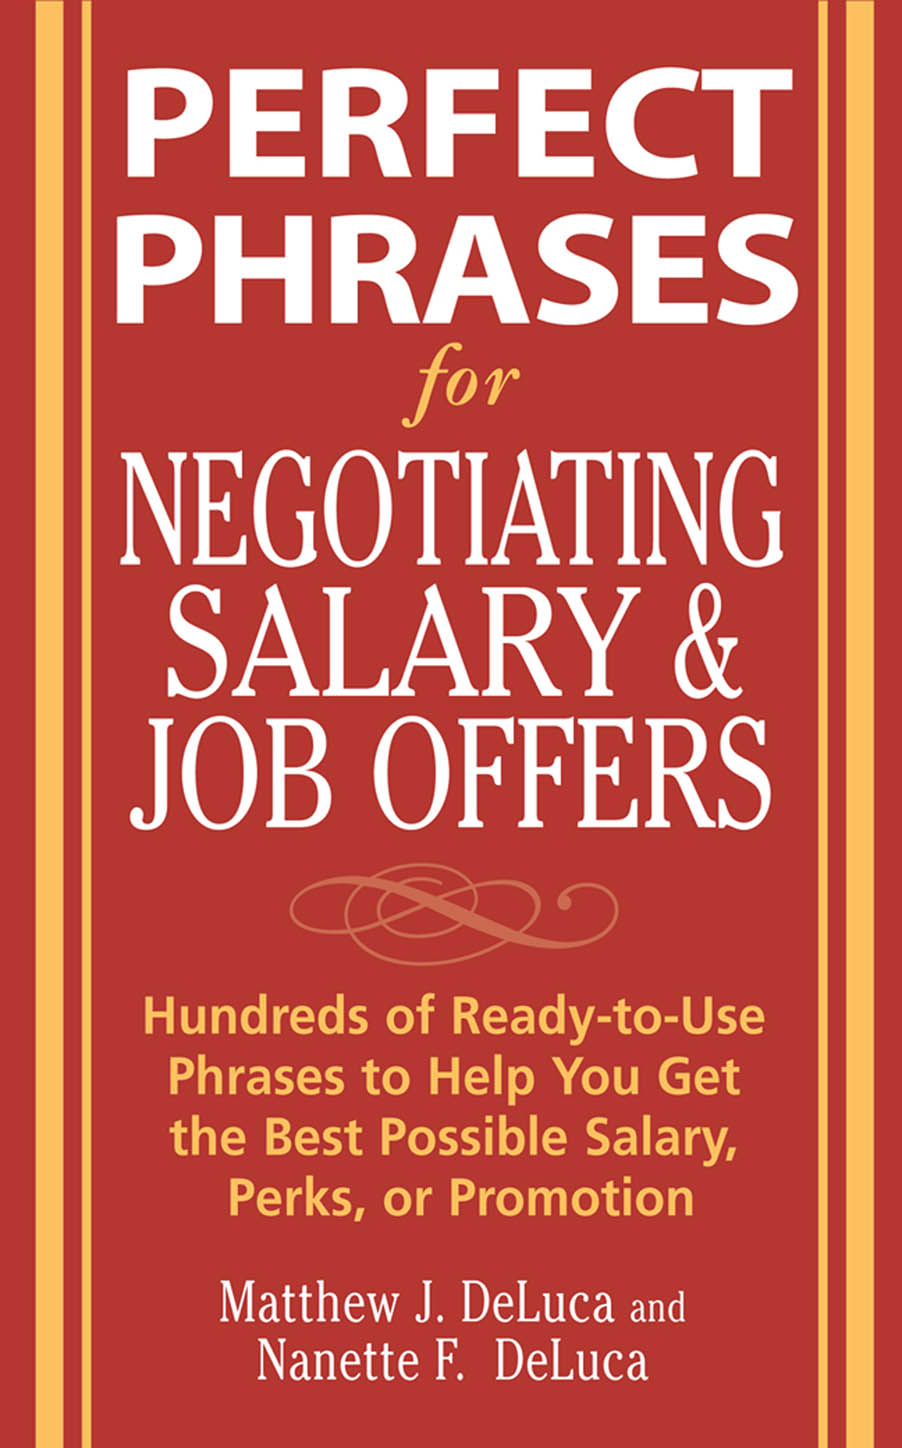 Perfect Phrases for Negotiating Salary and Job Offers: Hundreds of Ready-to-Use Phrases to Help You Get the Best Possible Salary, Perks or Promotion By:  Nanette DeLuca,Matthew DeLuca